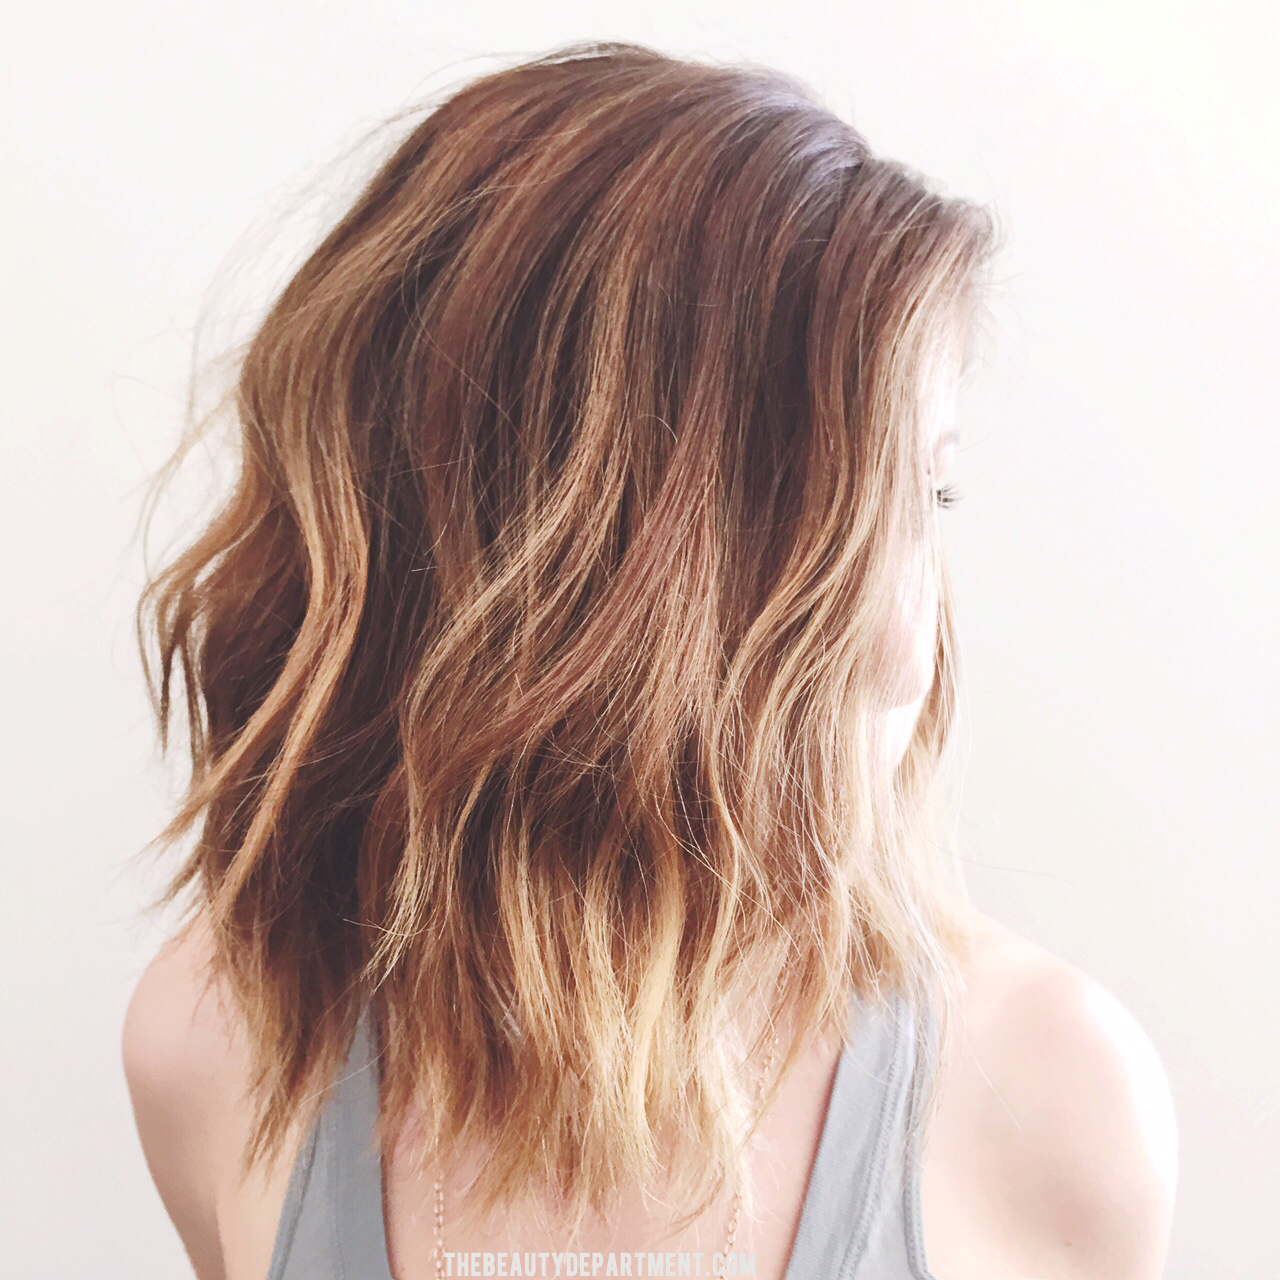 How To Get A Natural Blonde Hair Color